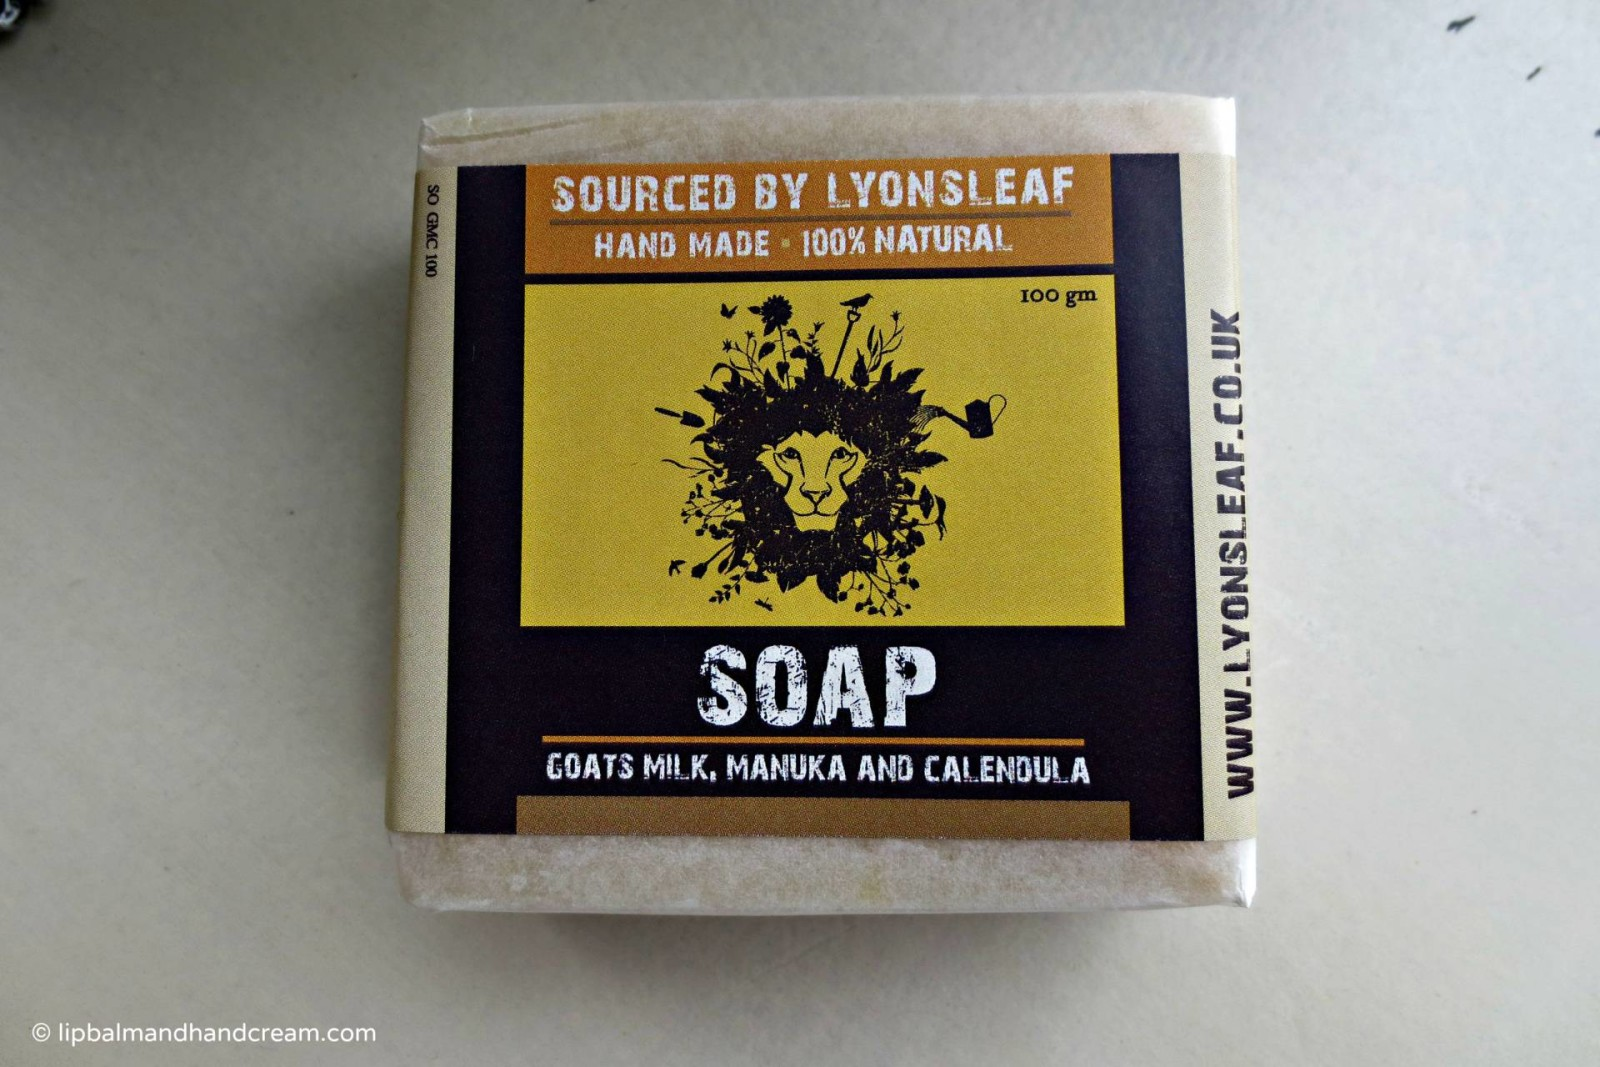 Lyonsleaf goats milk, manuka honey & calendula soap* – sample sent to me by the brand